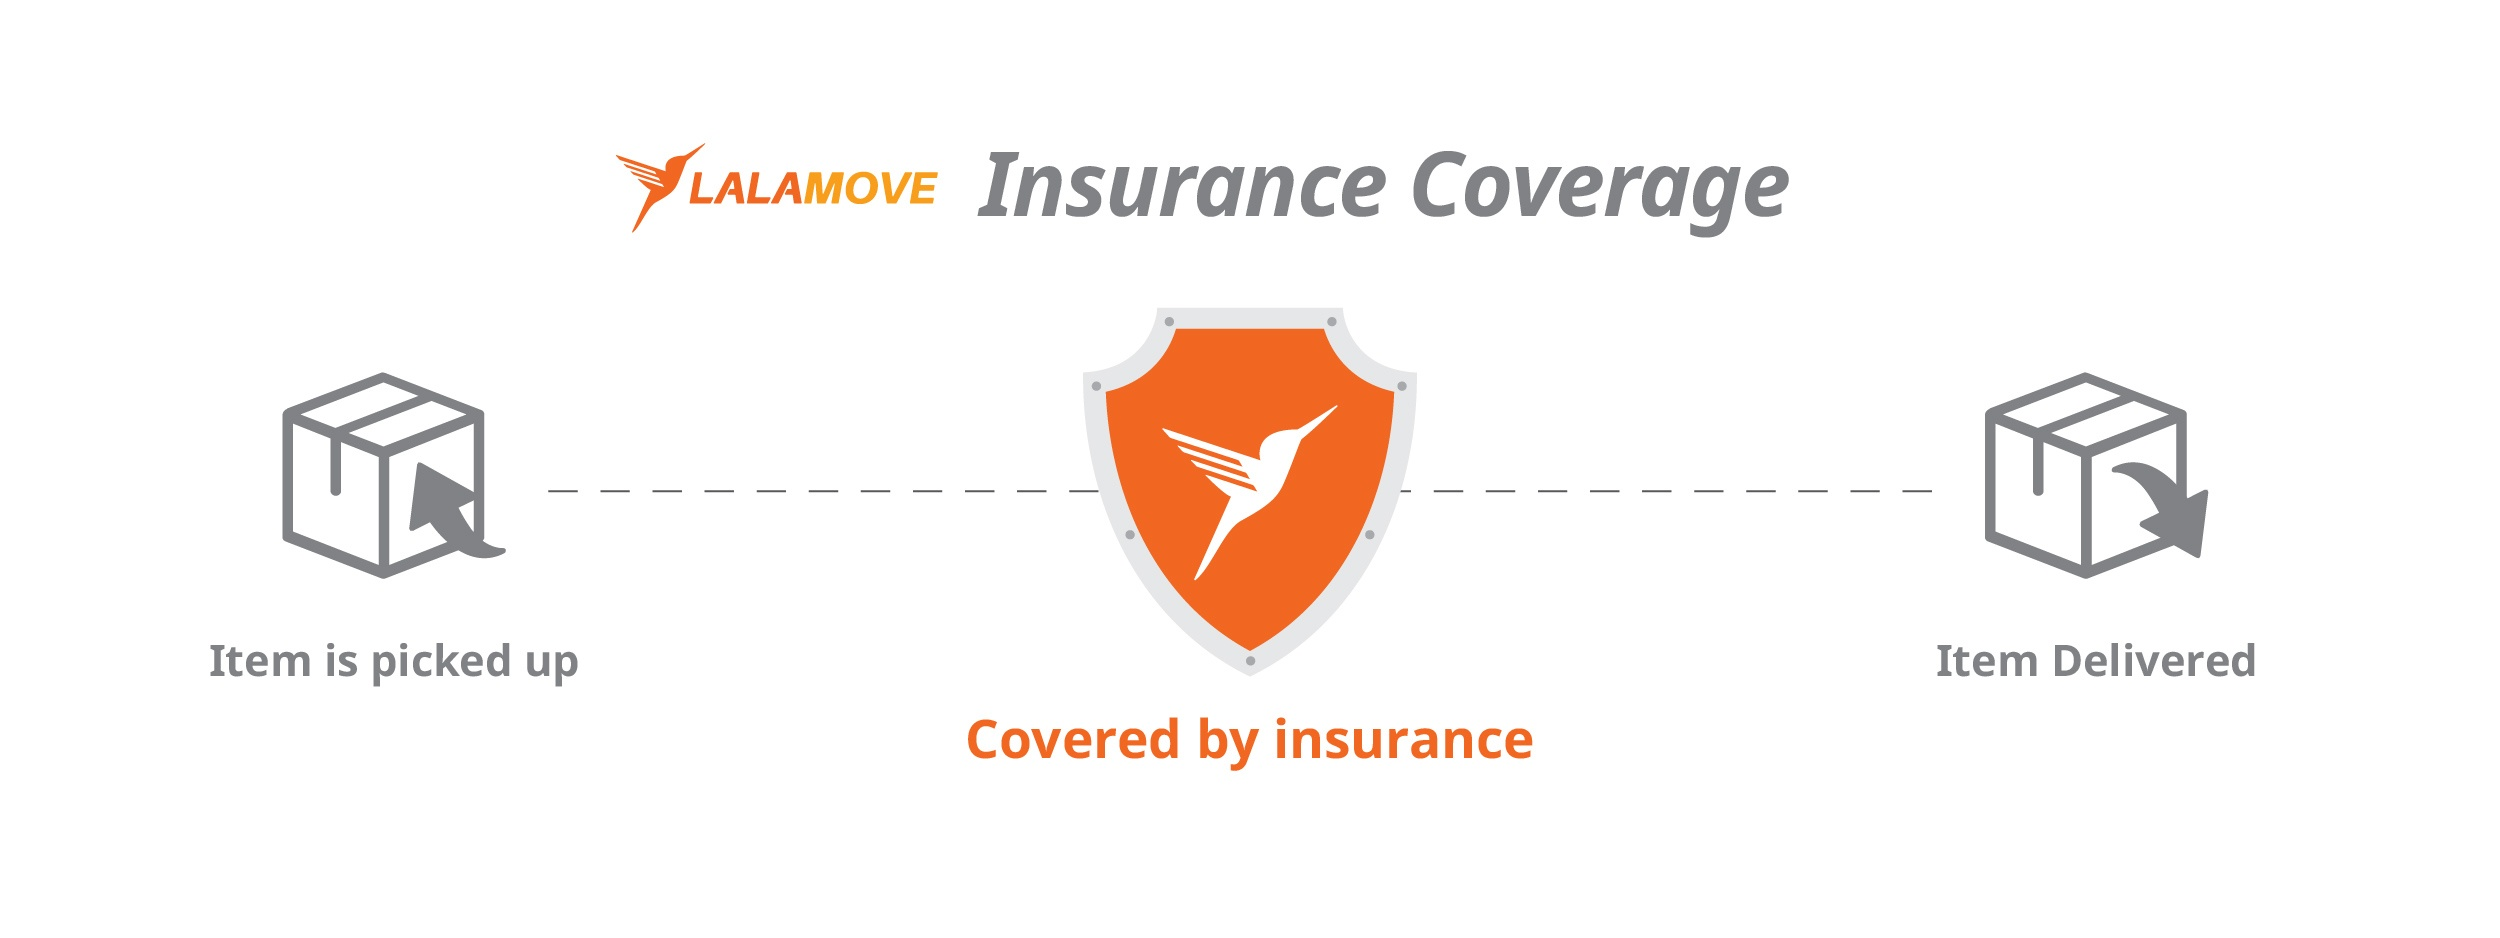 Your items are insurance covered